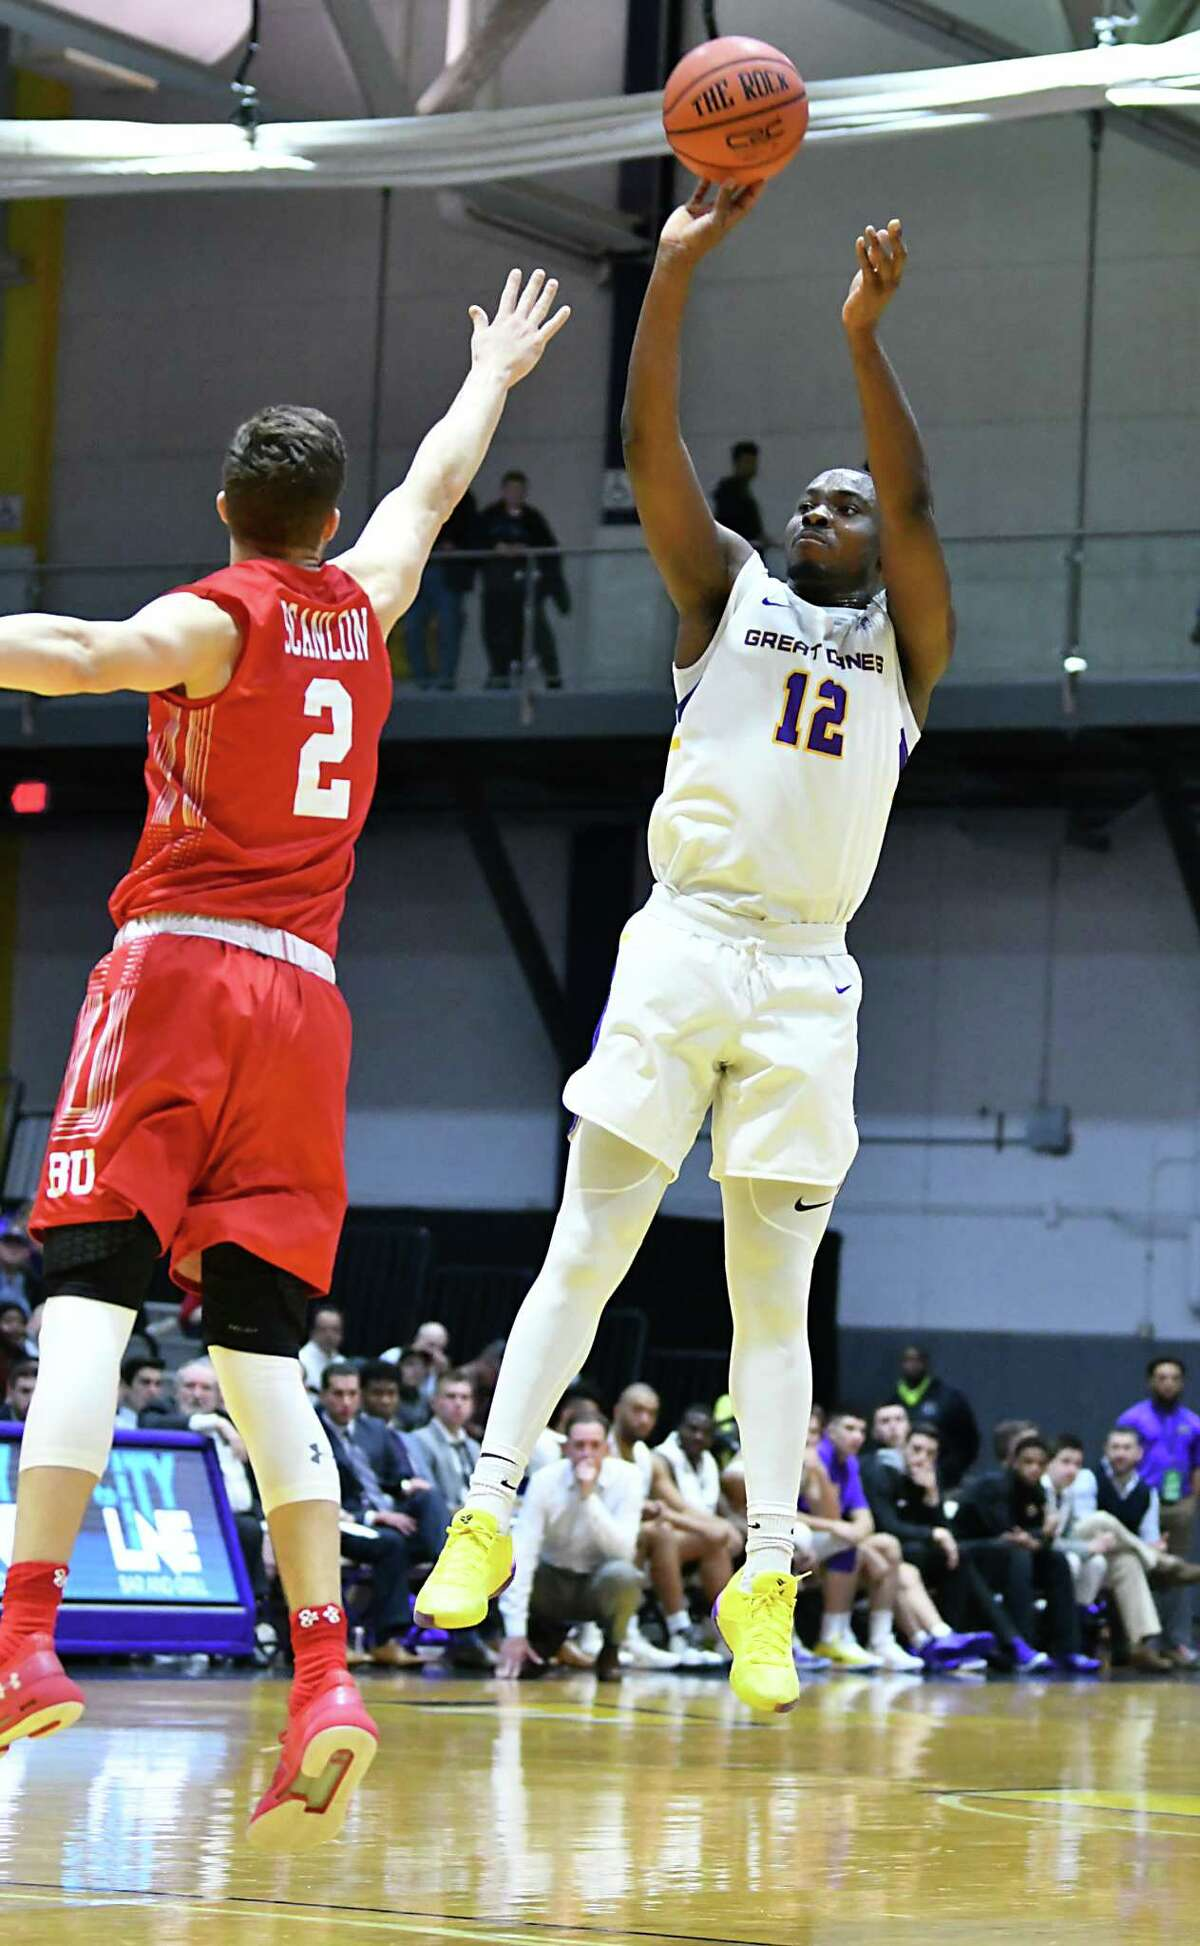 UAlbany's Devonte Campbell takes a jump shot guarded by Boston University's Tyler Scanlon during a basketball game at SEFCU Arena on Wednesday, Nov. 14, 2018 in Albany, N.Y. (Lori Van Buren/Times Union)